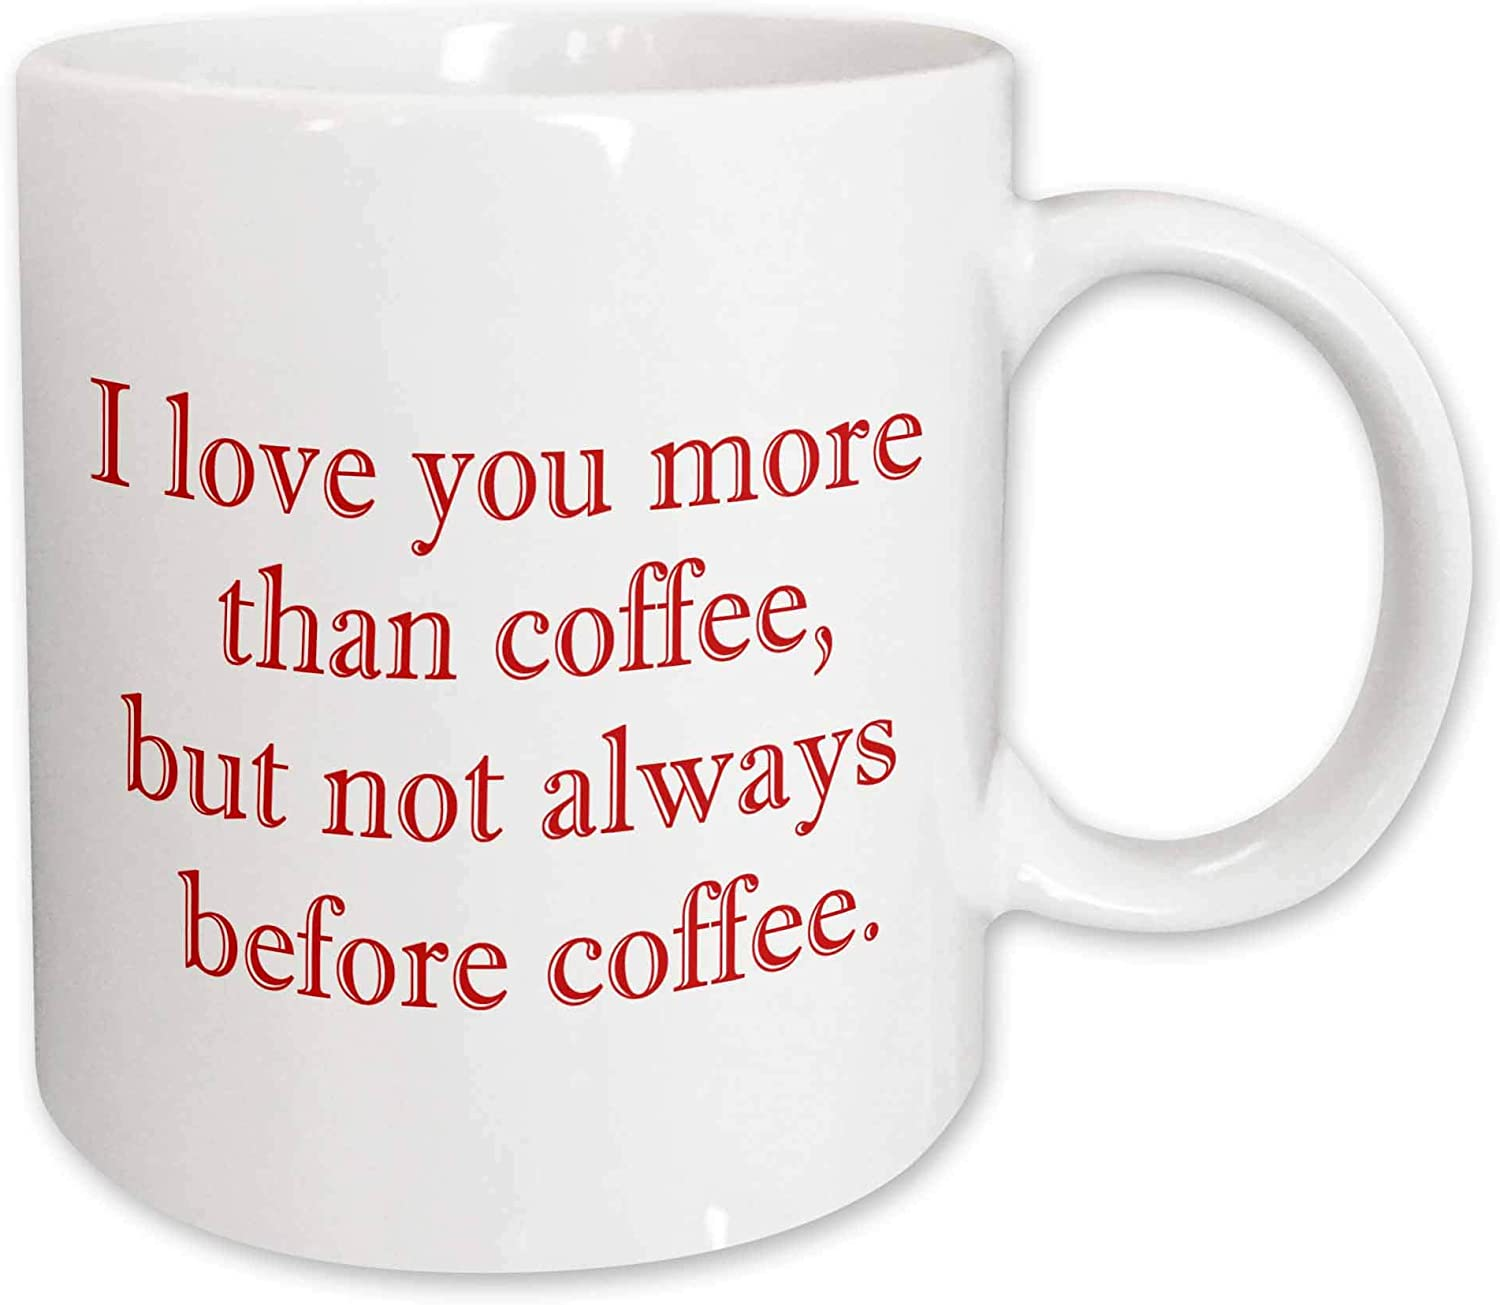 Amazon Com 3drose Mug 200839 2 I Love You More Than Coffee But Not Always Before Coffee Red Ceramic Mug 15 Ounce Kitchen Dining